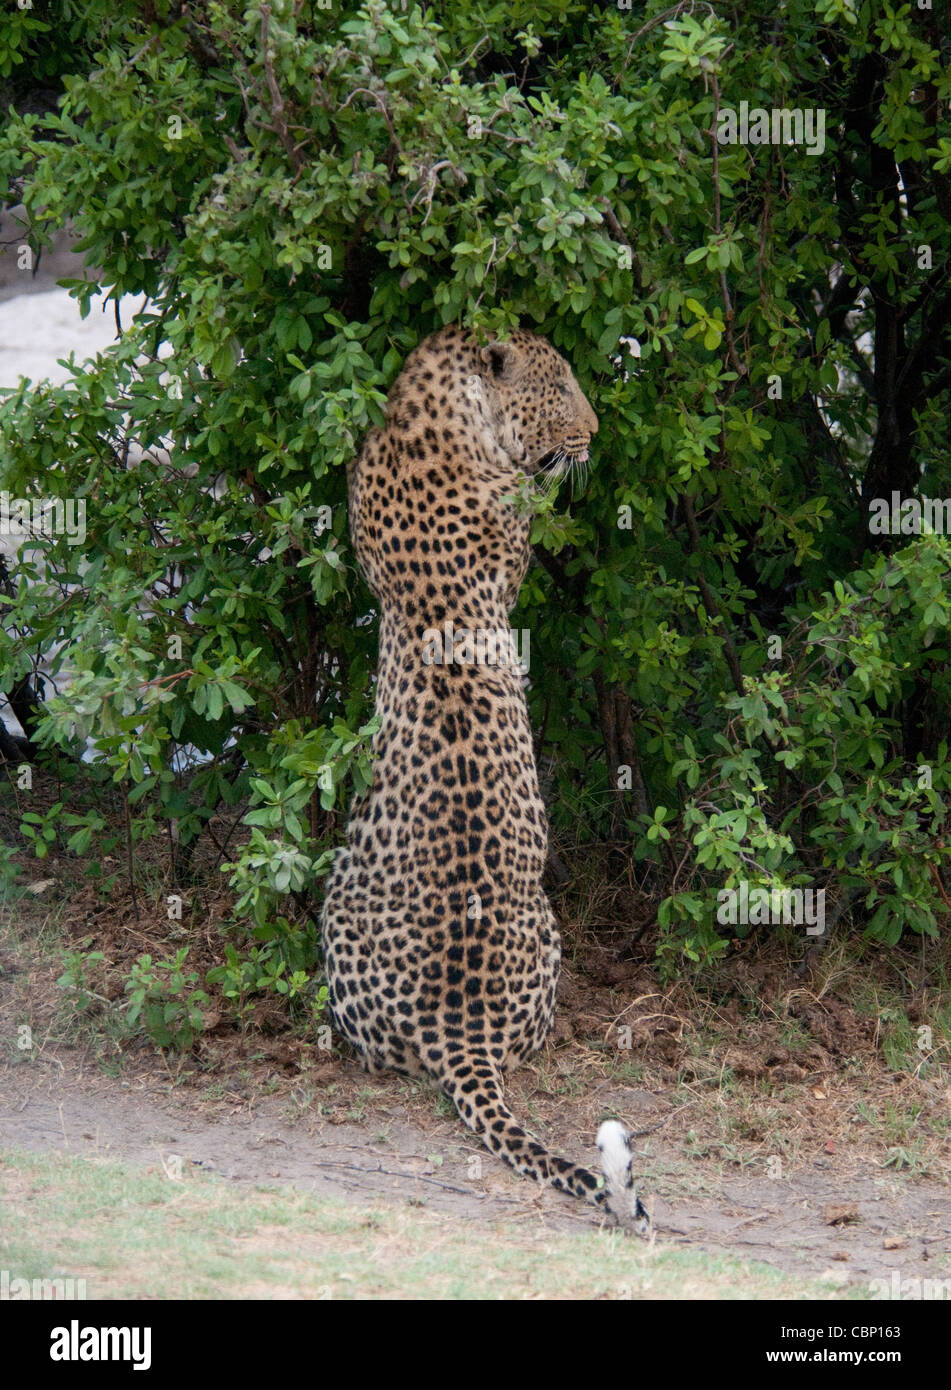 Africa Botswana Linyanti Reserve-Leopard sitting up with paws on tree - Stock Image